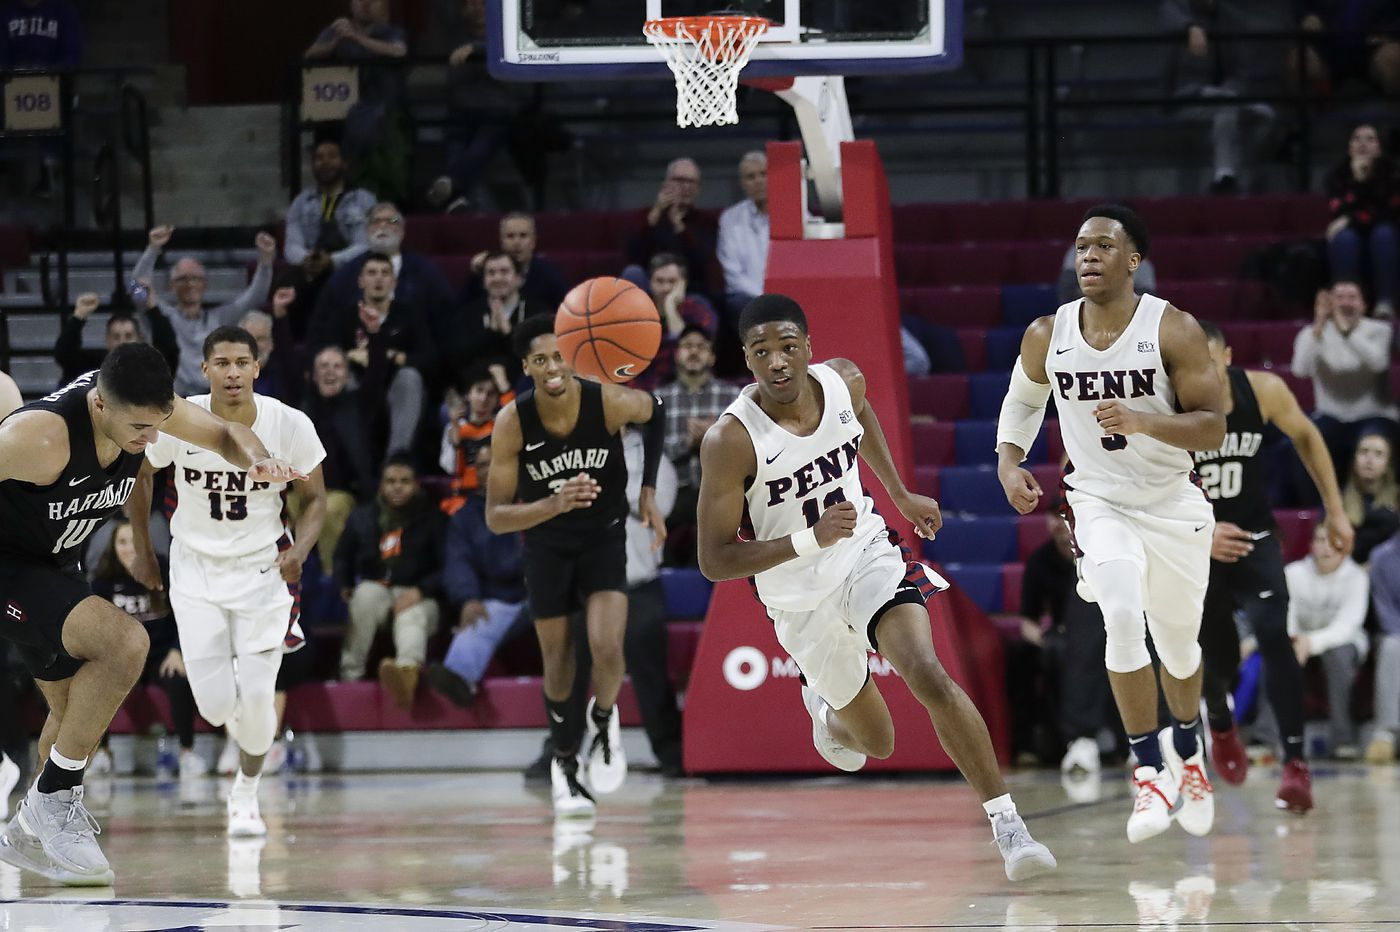 Penn basketball roster: Quakers boost backcourt with incoming freshmen, but AJ Brodeur's graduation leaves a big hole